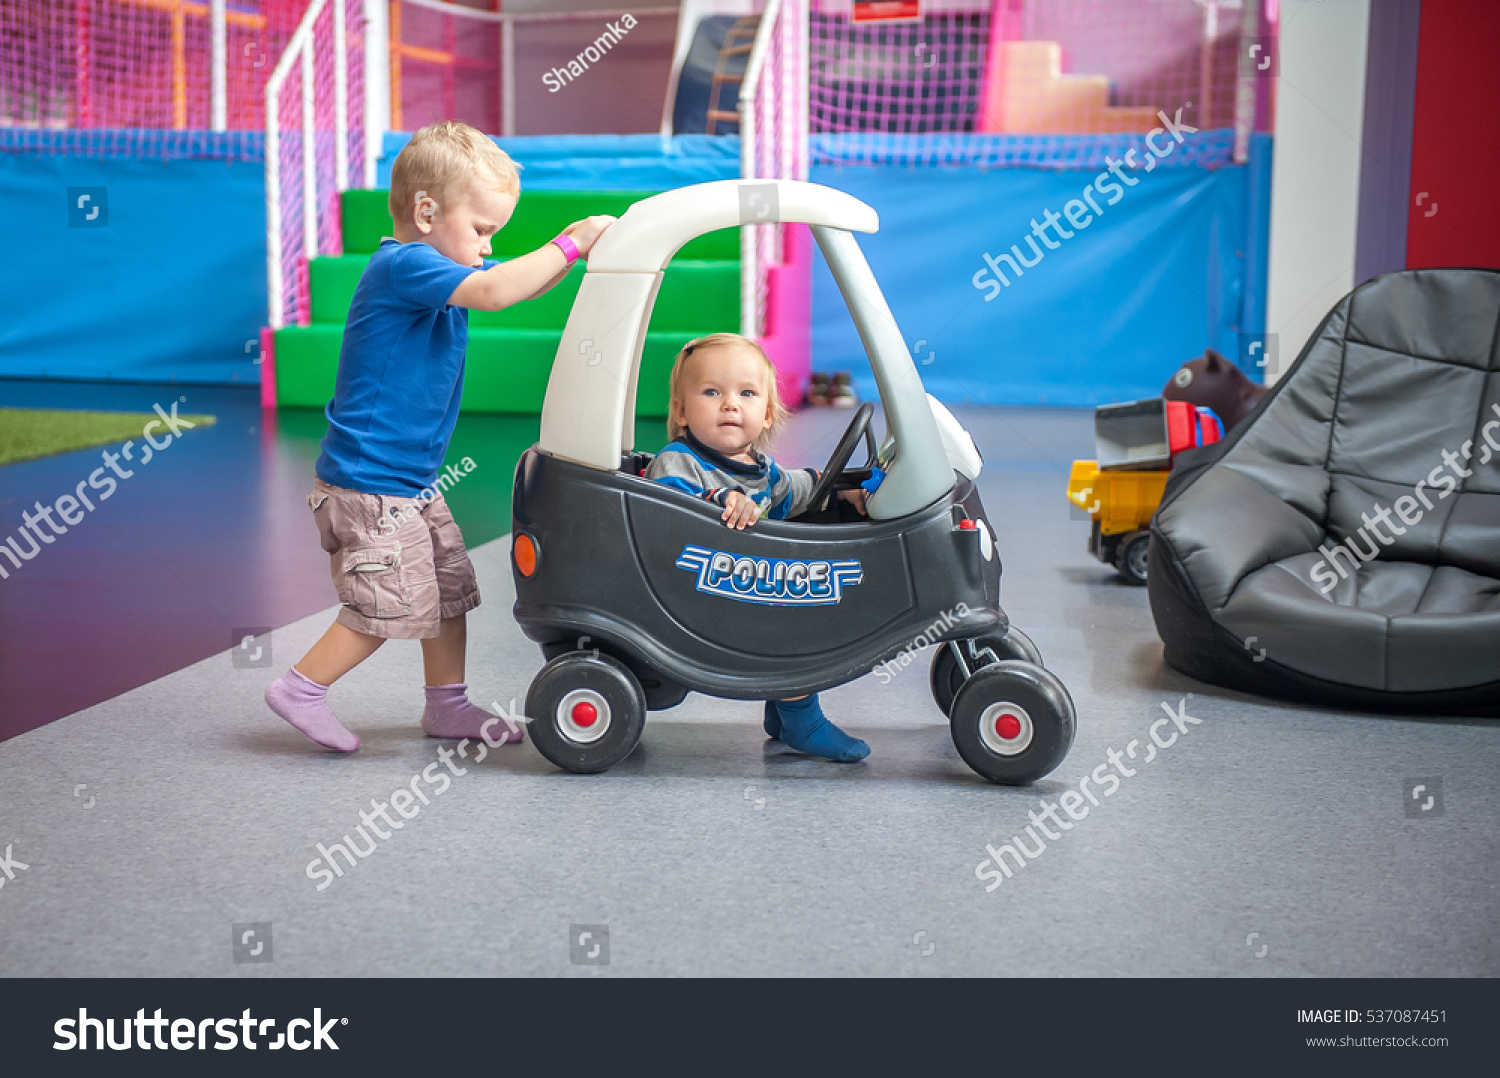 Toys For Kindergarten : Baby kid toddler playing driving toy stock photo